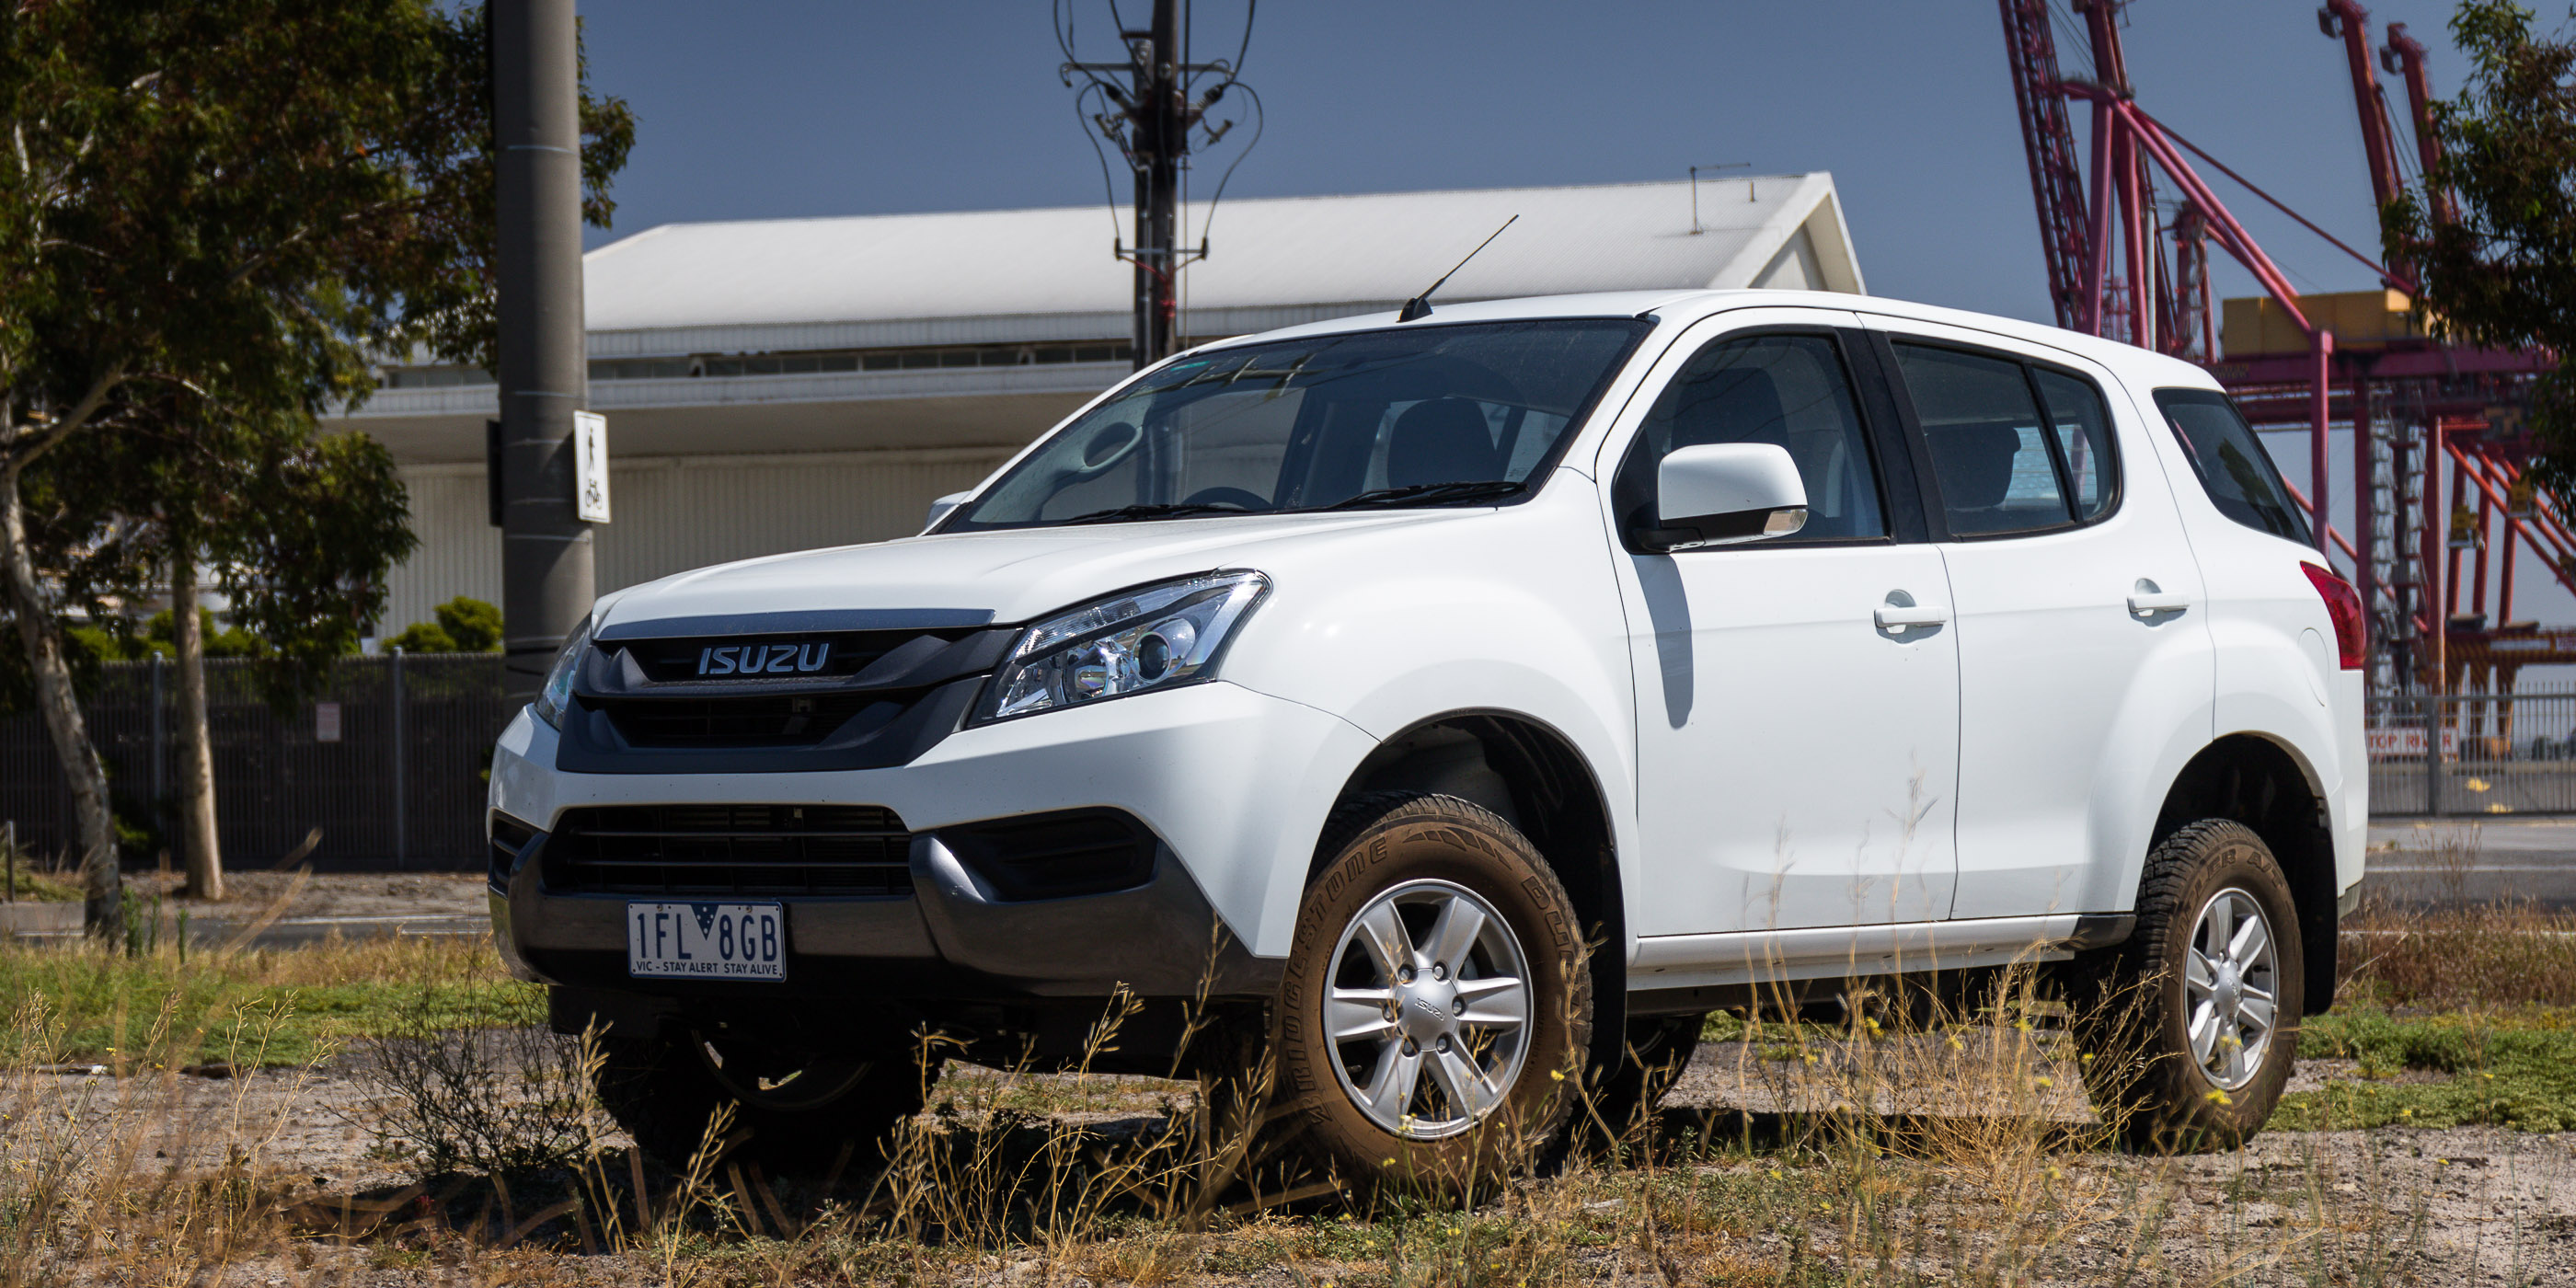 Perfect 2016 Isuzu MUX LSM 4x2 Review  CarAdvice